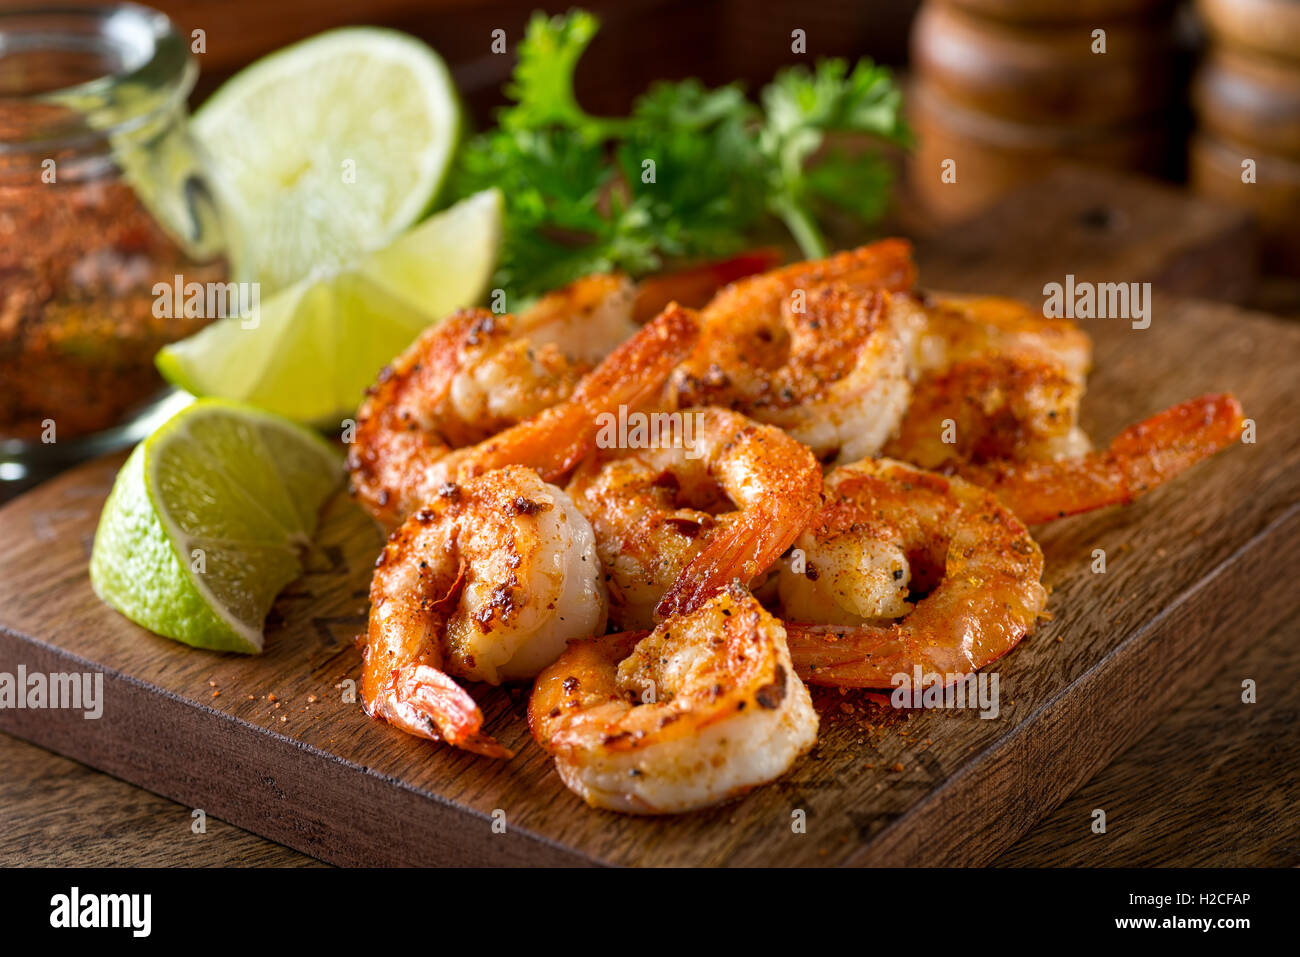 Delicious sauteed shrimp with cajun seasoning and lime on a maple plank. - Stock Image